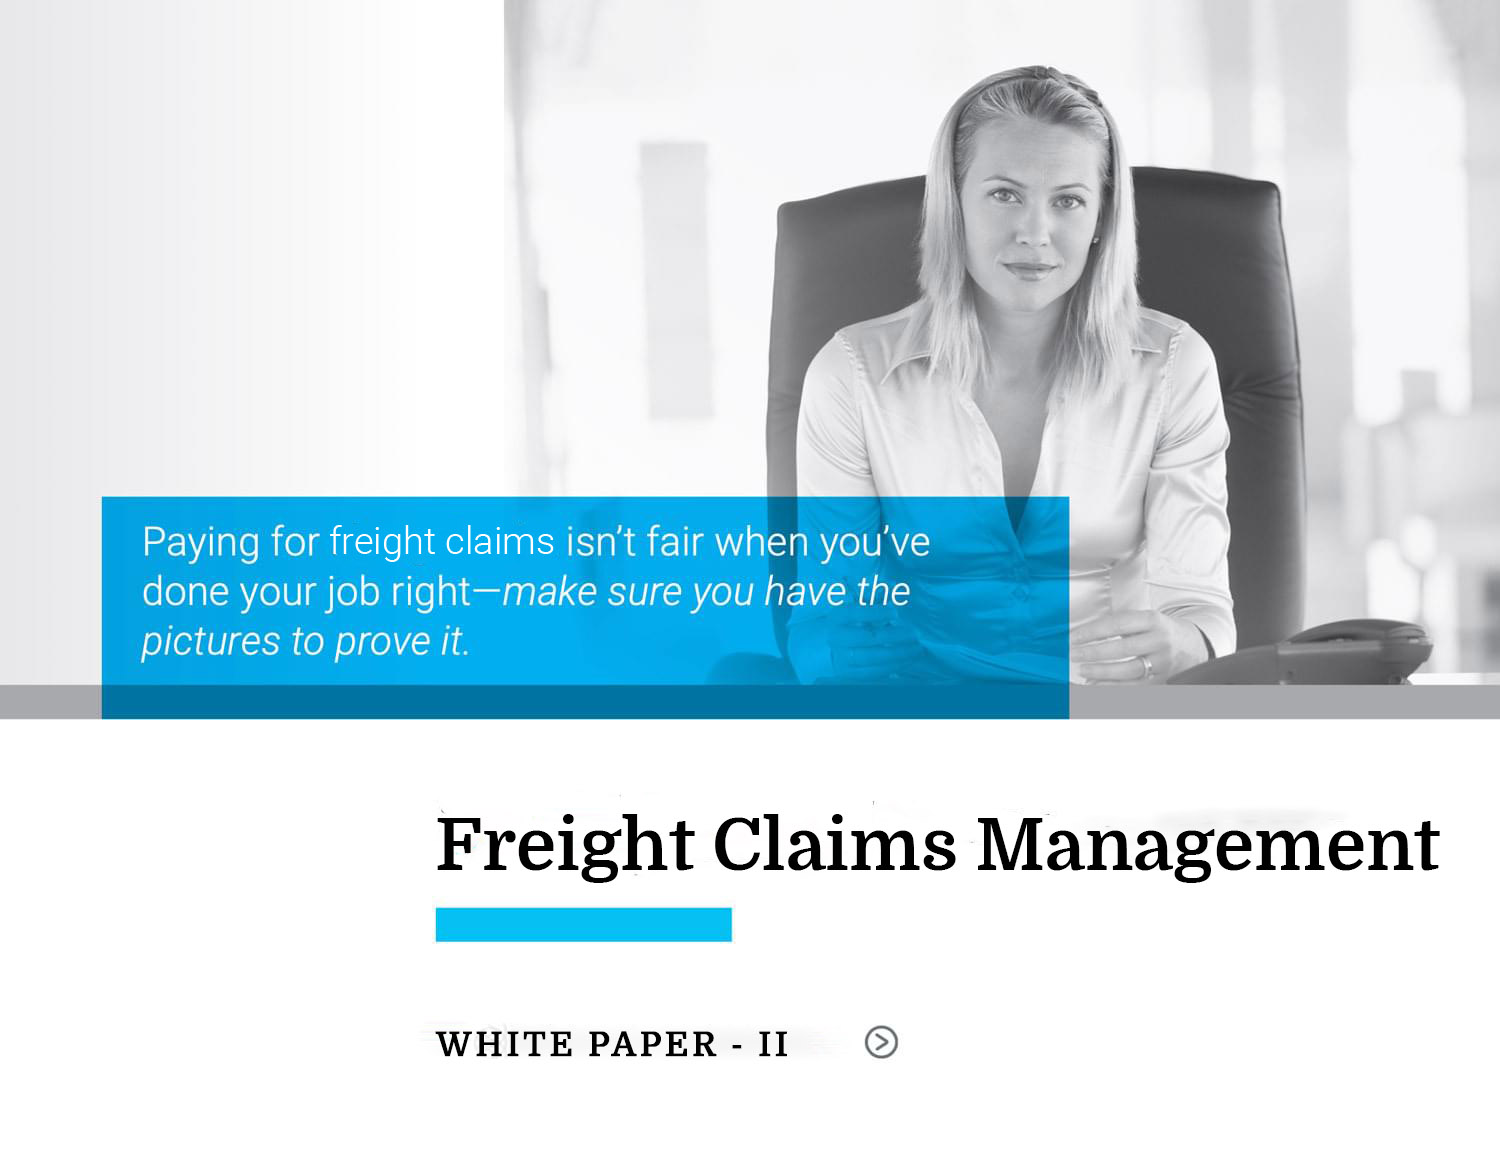 freight-management-2